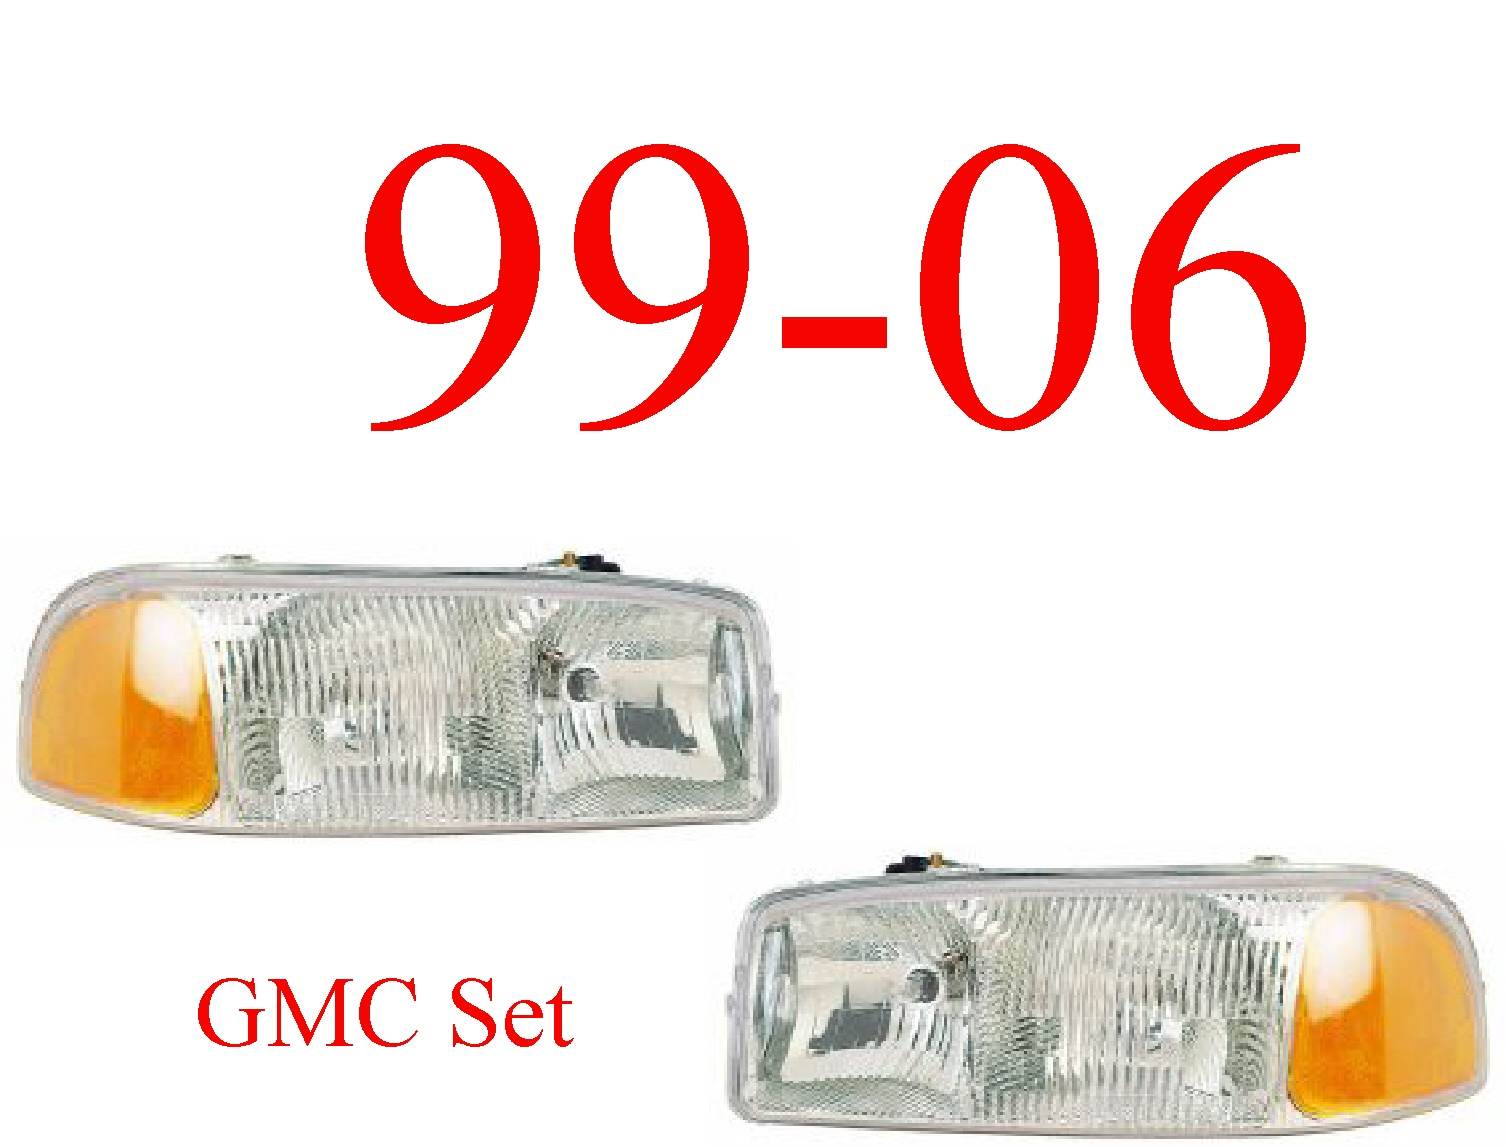 99-06 GMC Truck Head Light Set